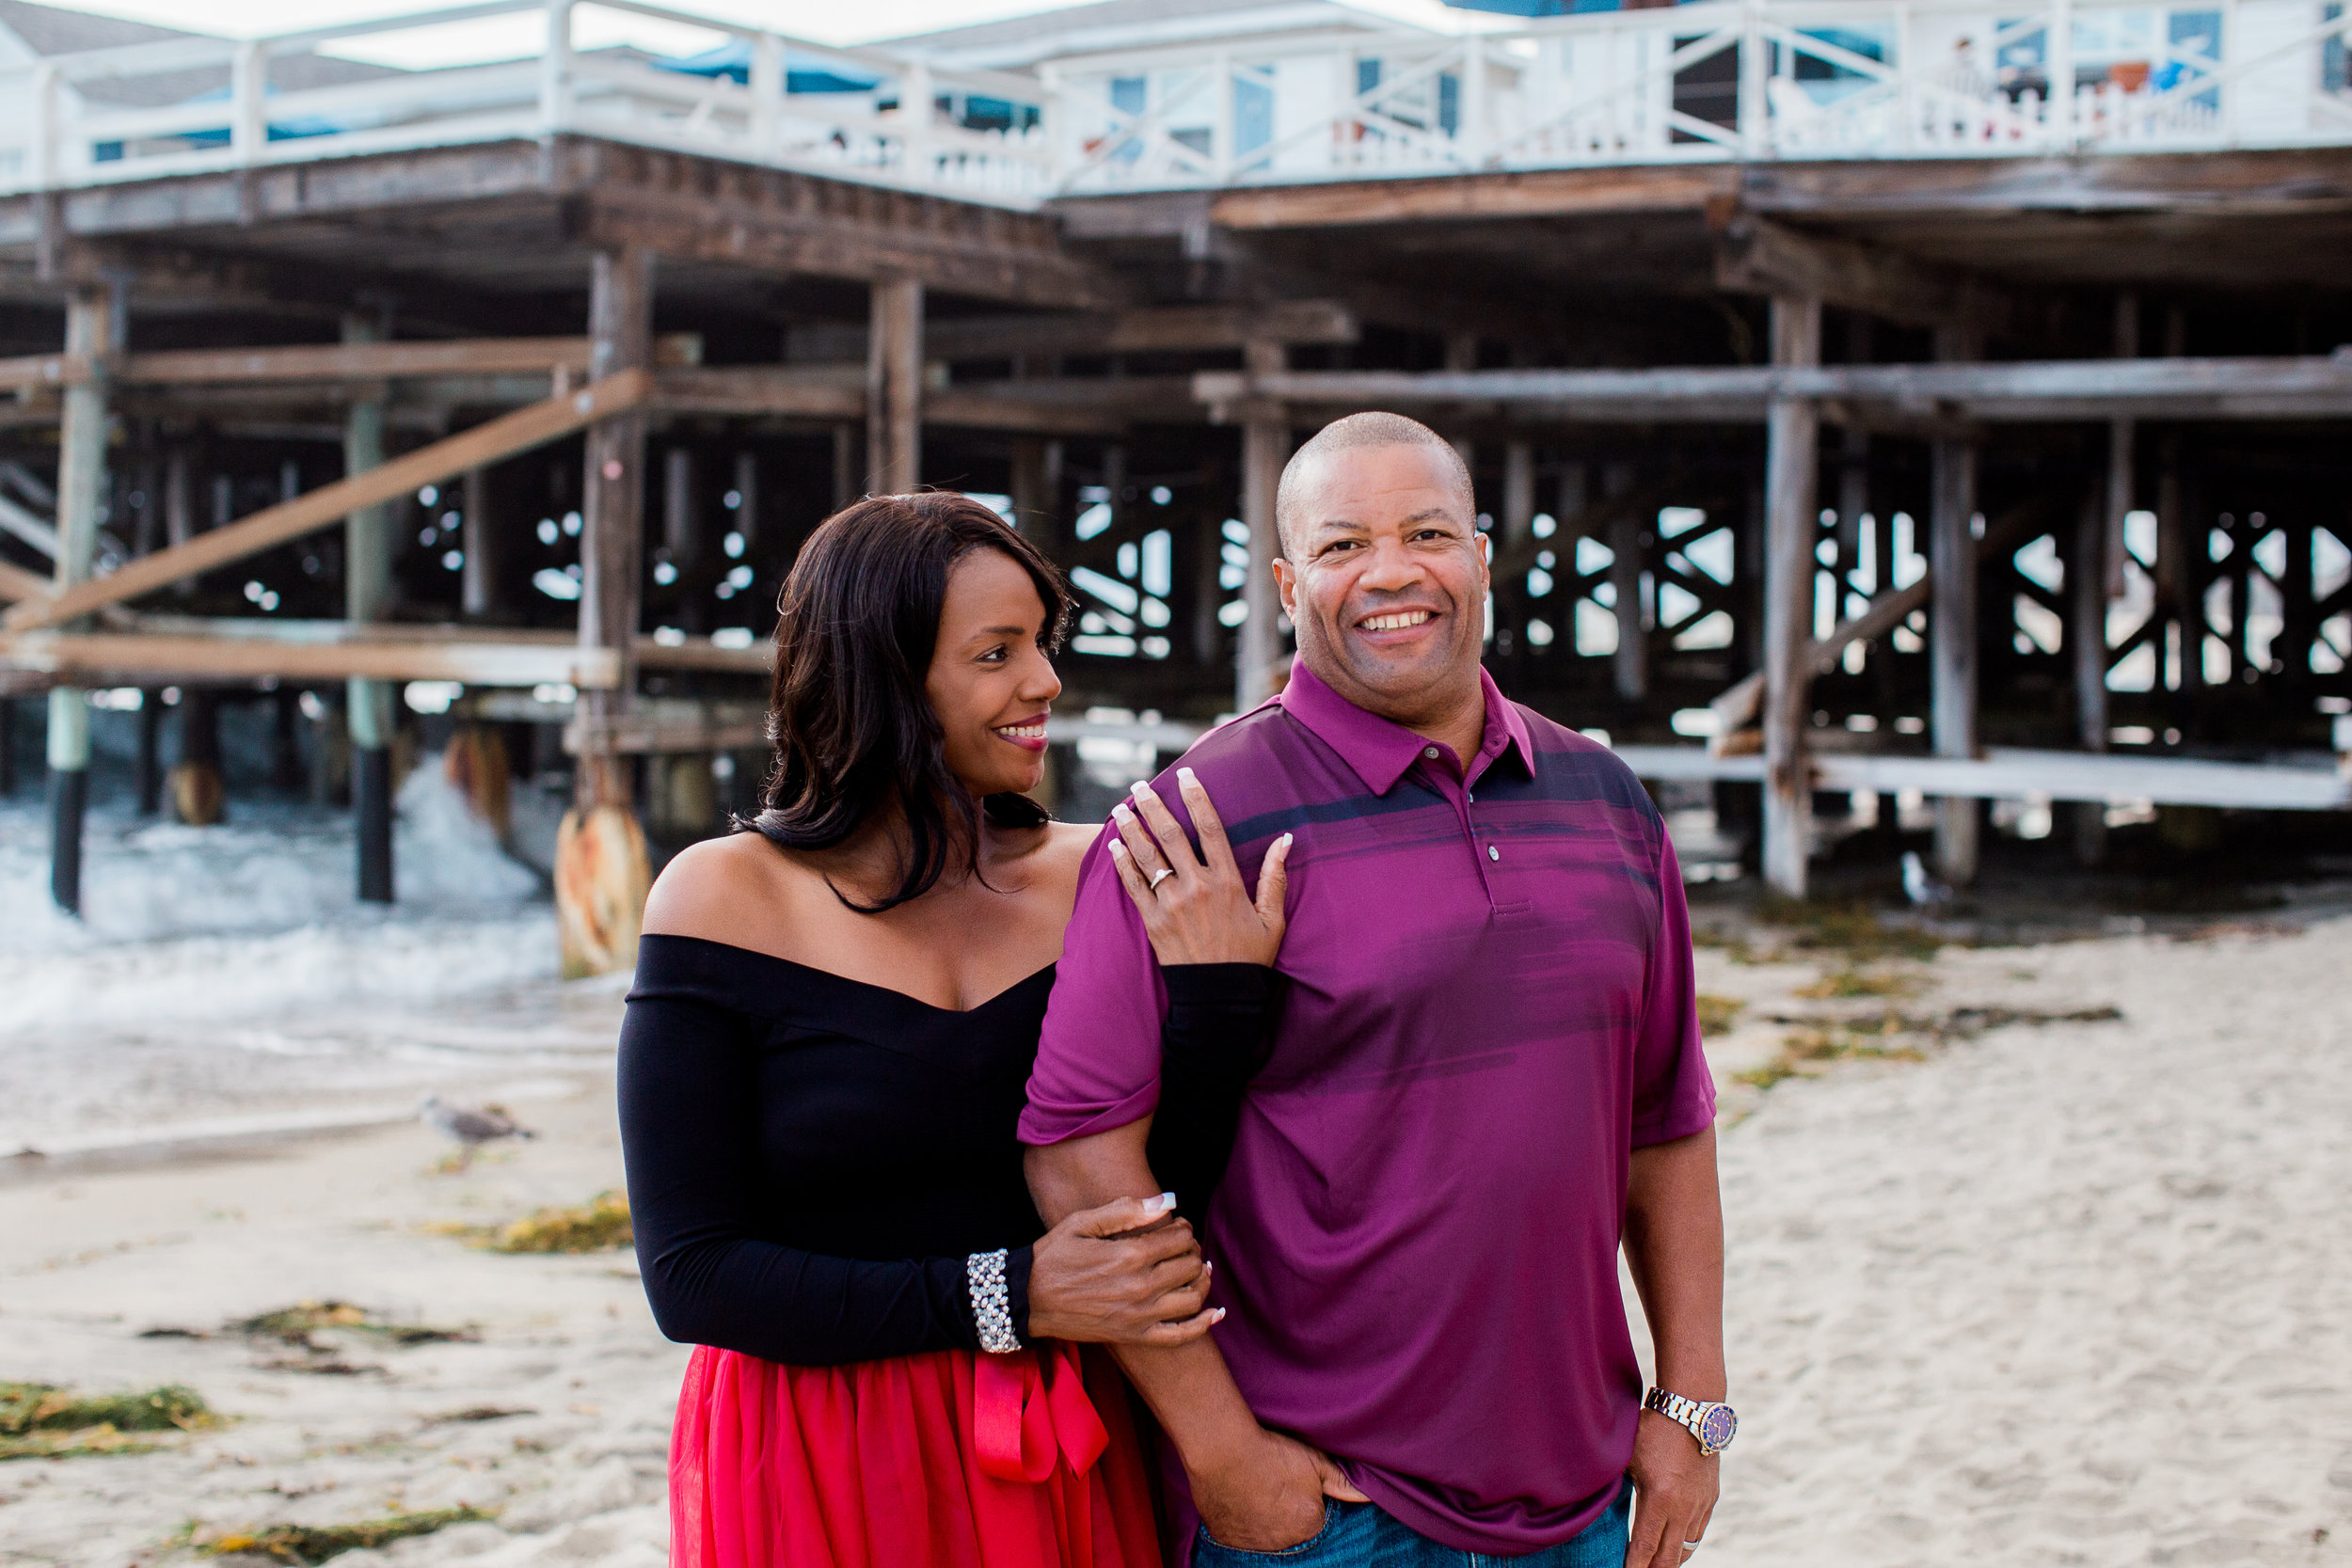 san-diego-pacific-beach-styled-engagement-romantic-photographer (57 of 76).jpg